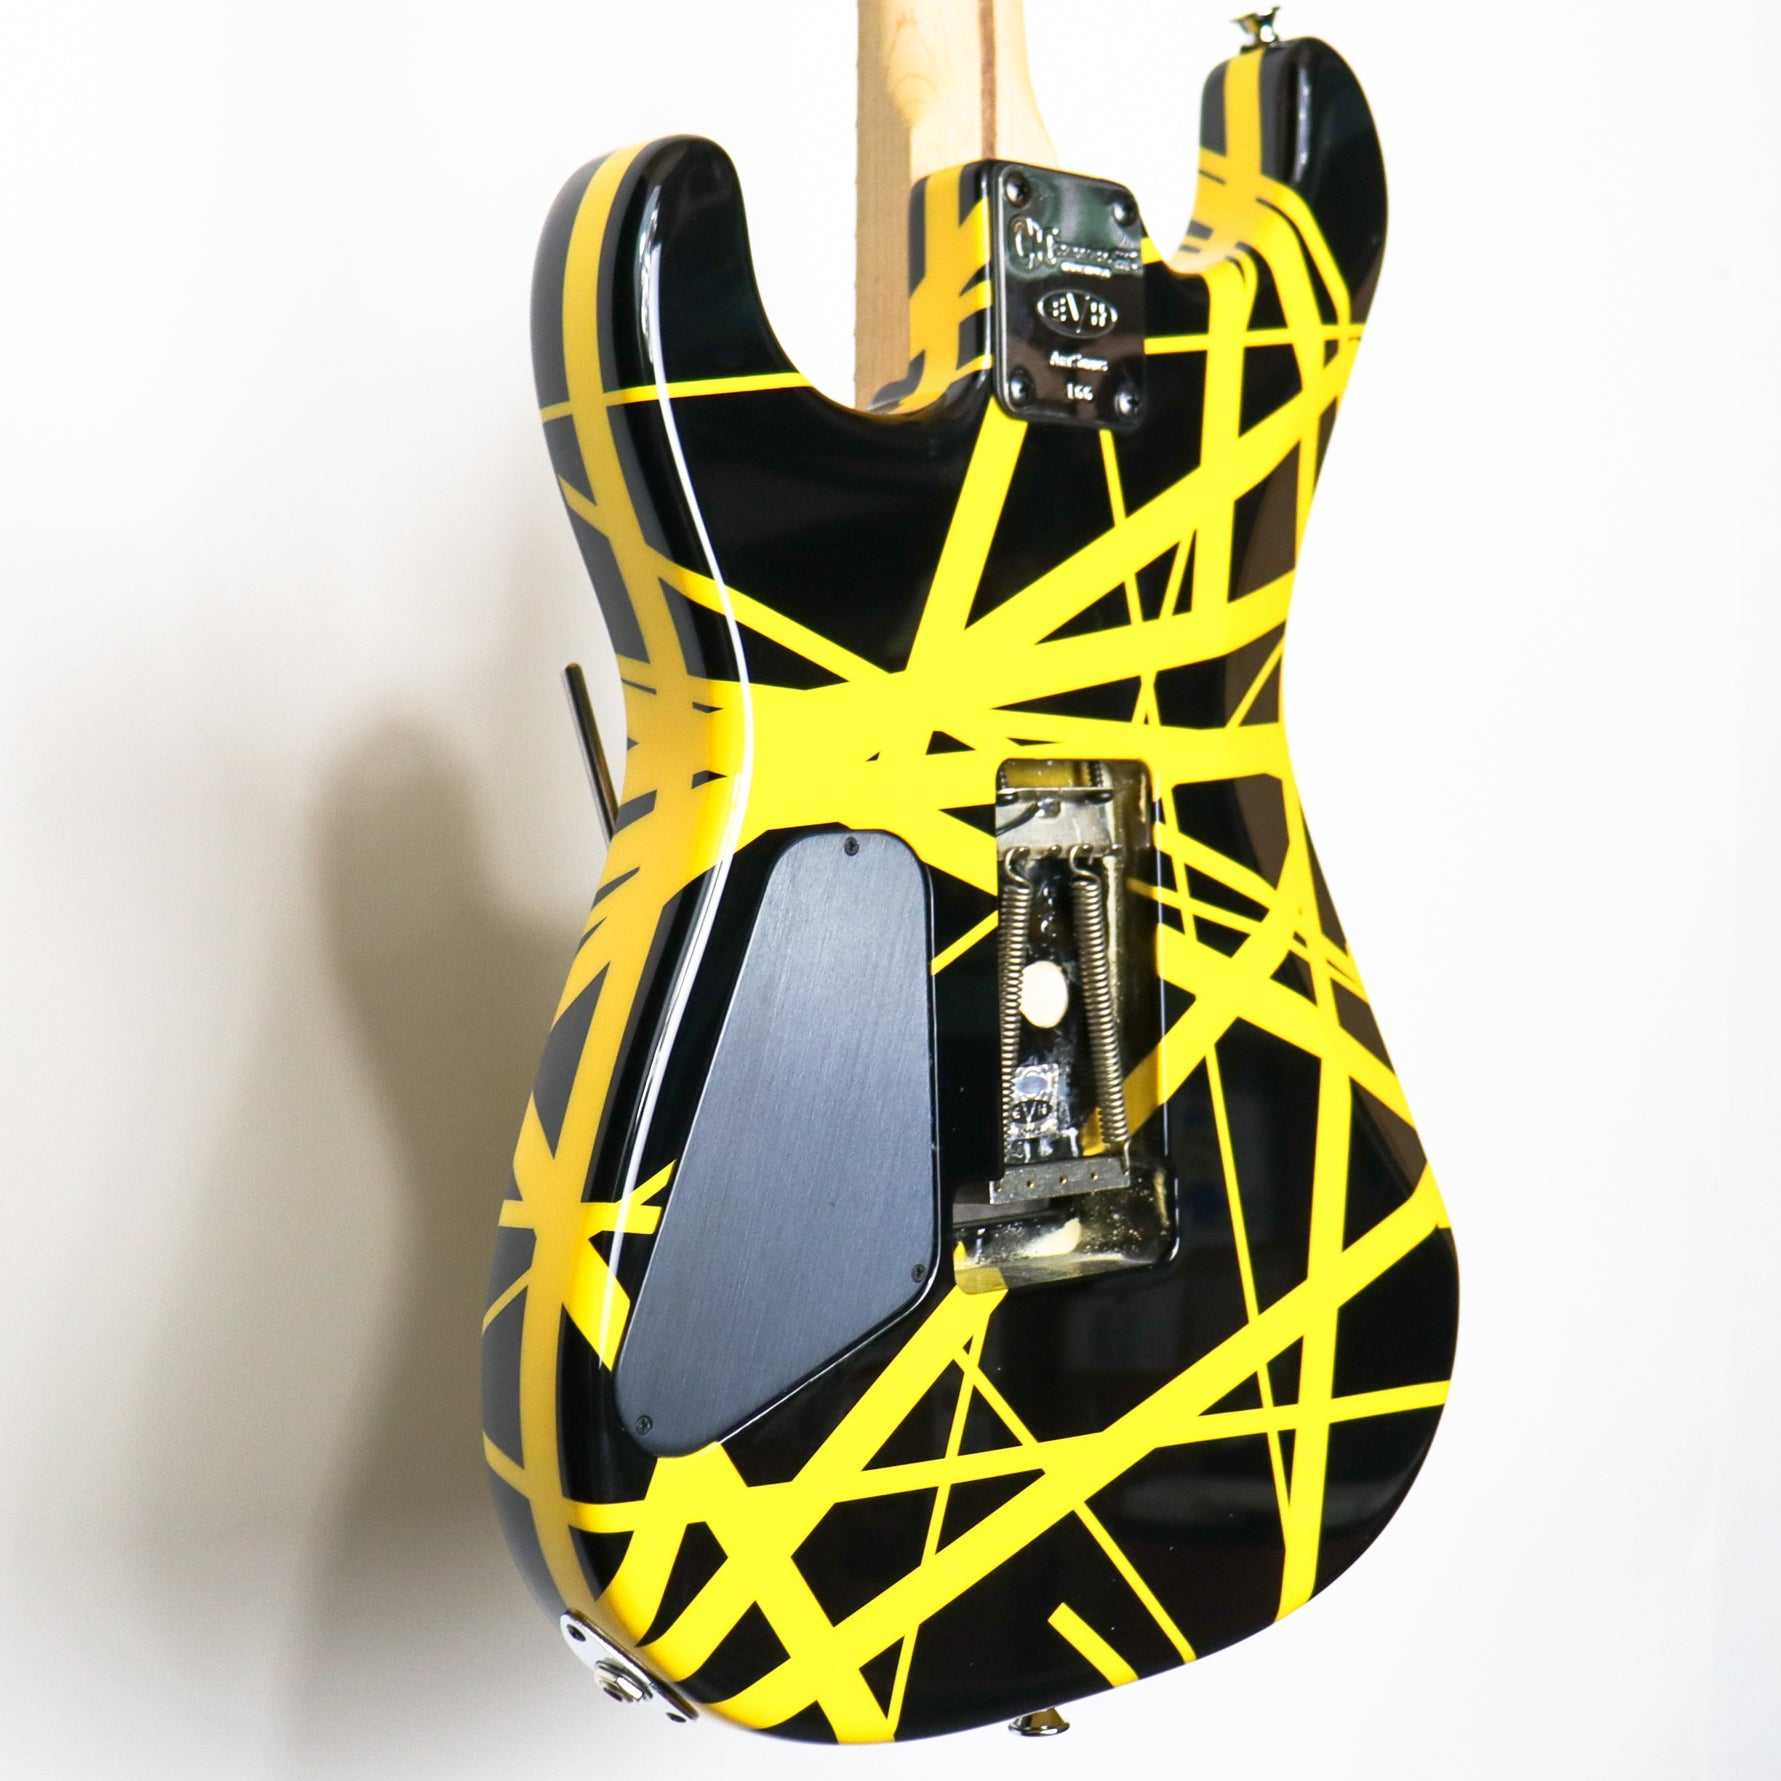 Charvel Bumble Bee #166 Signed and Played Live by Eddie Van Halen with Pictures and Case Candy